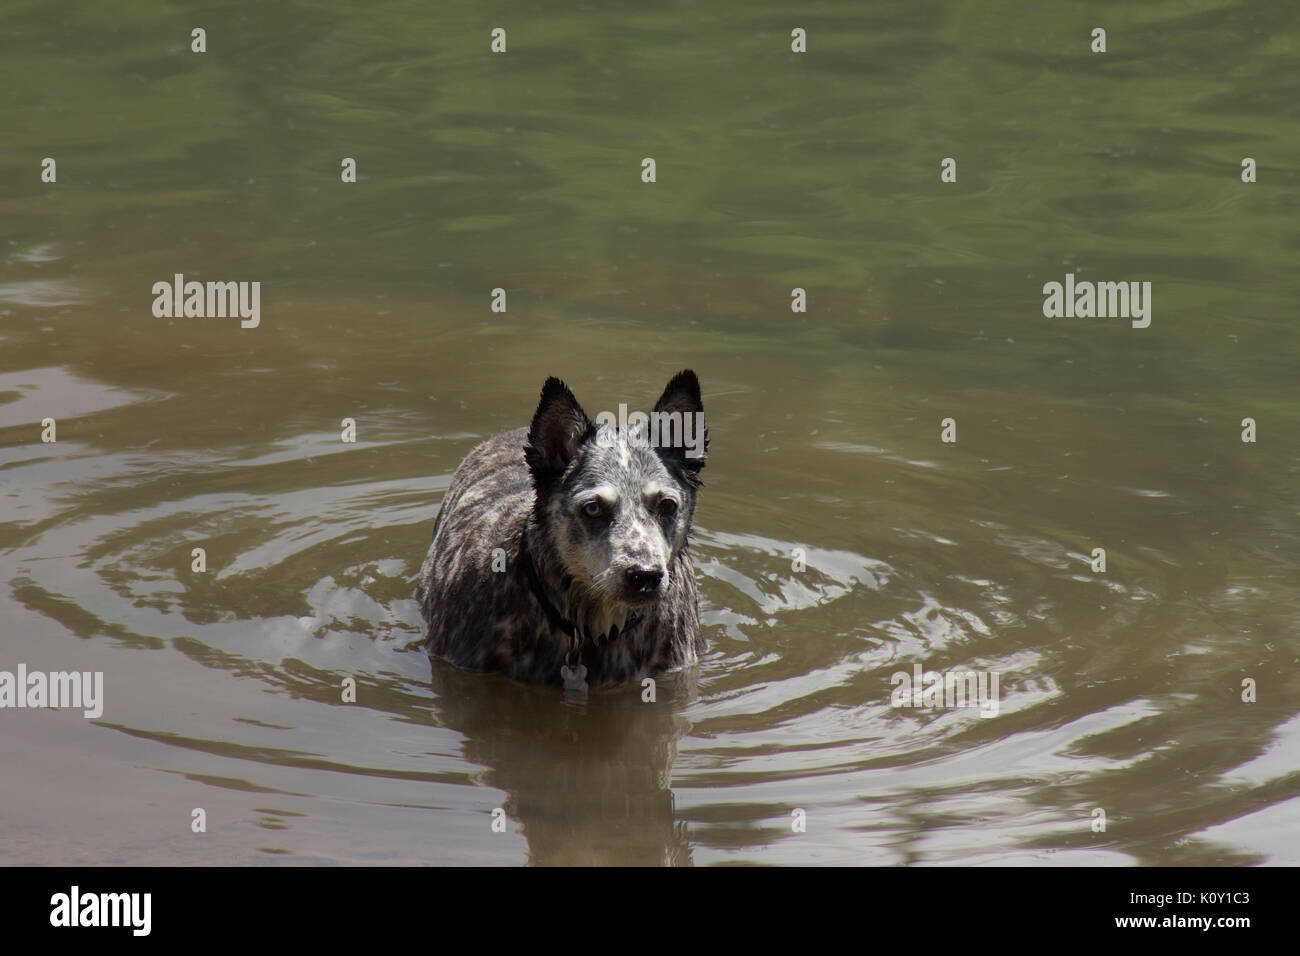 Grey dog (Canis lupus familiaris) cooling down in a lake during the California drought - Stock Image